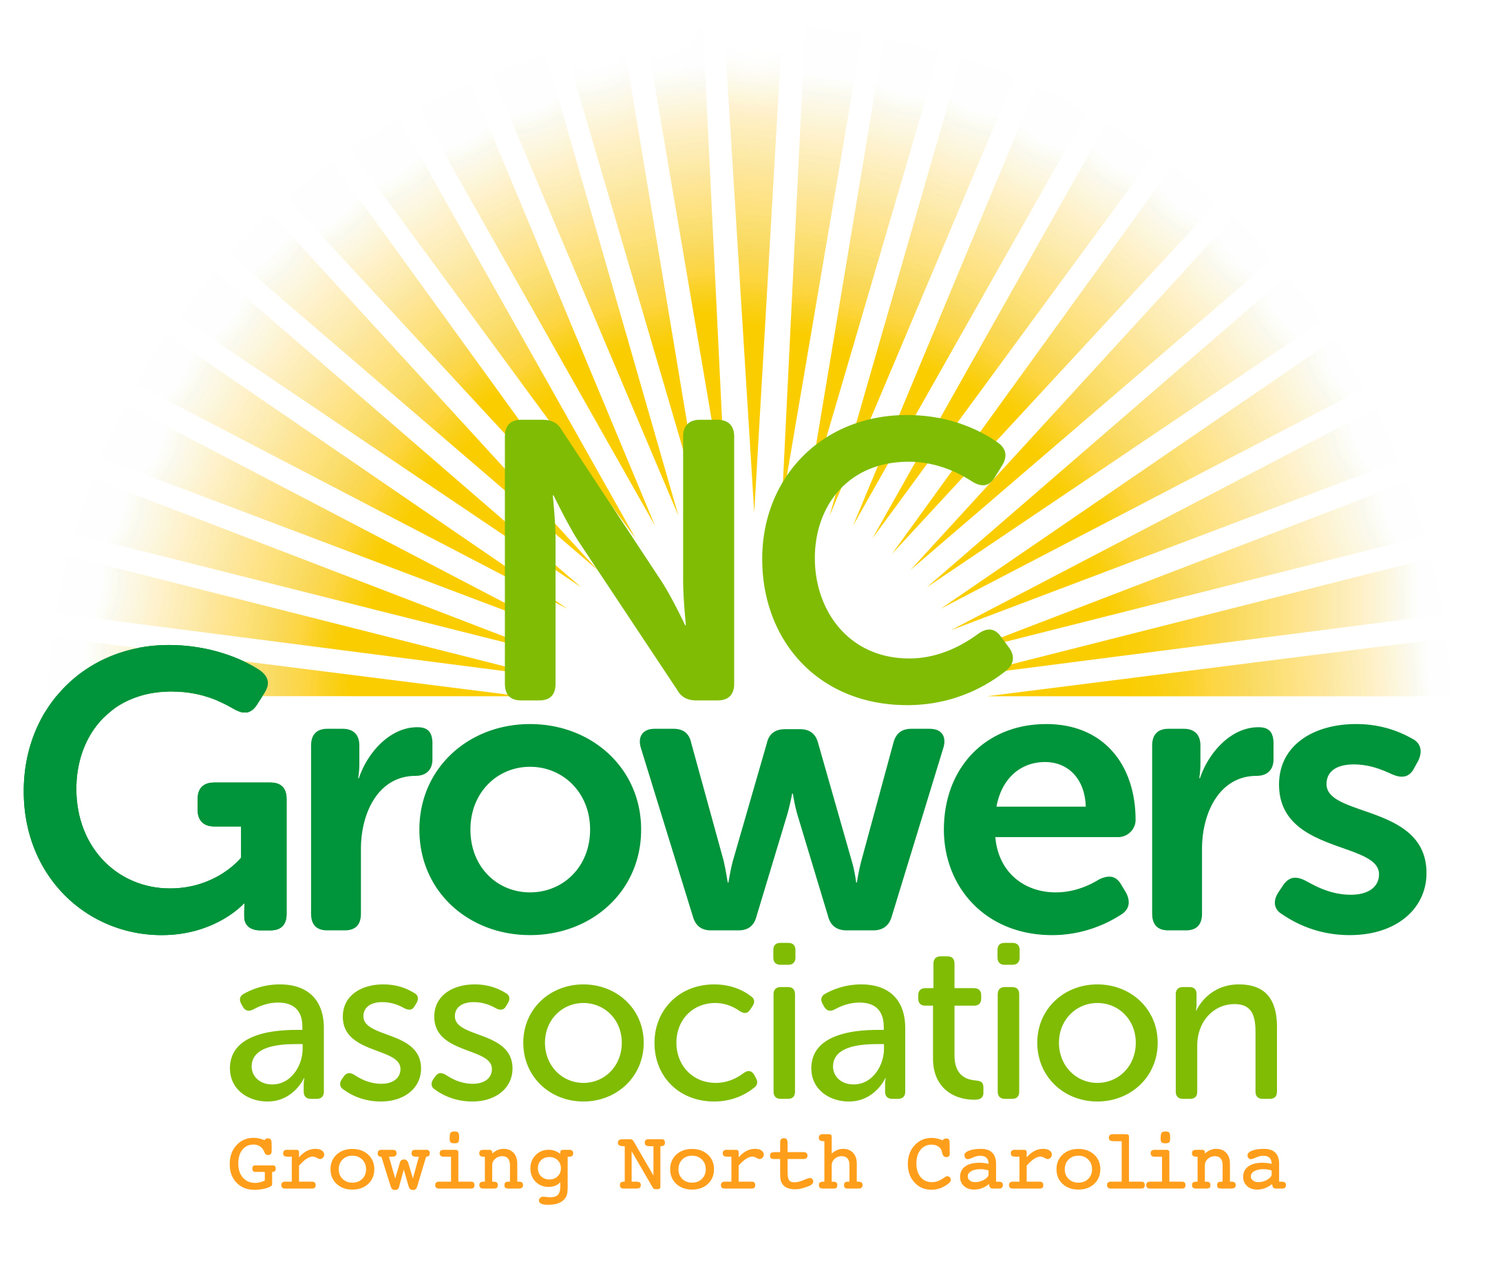 NC Growers Association